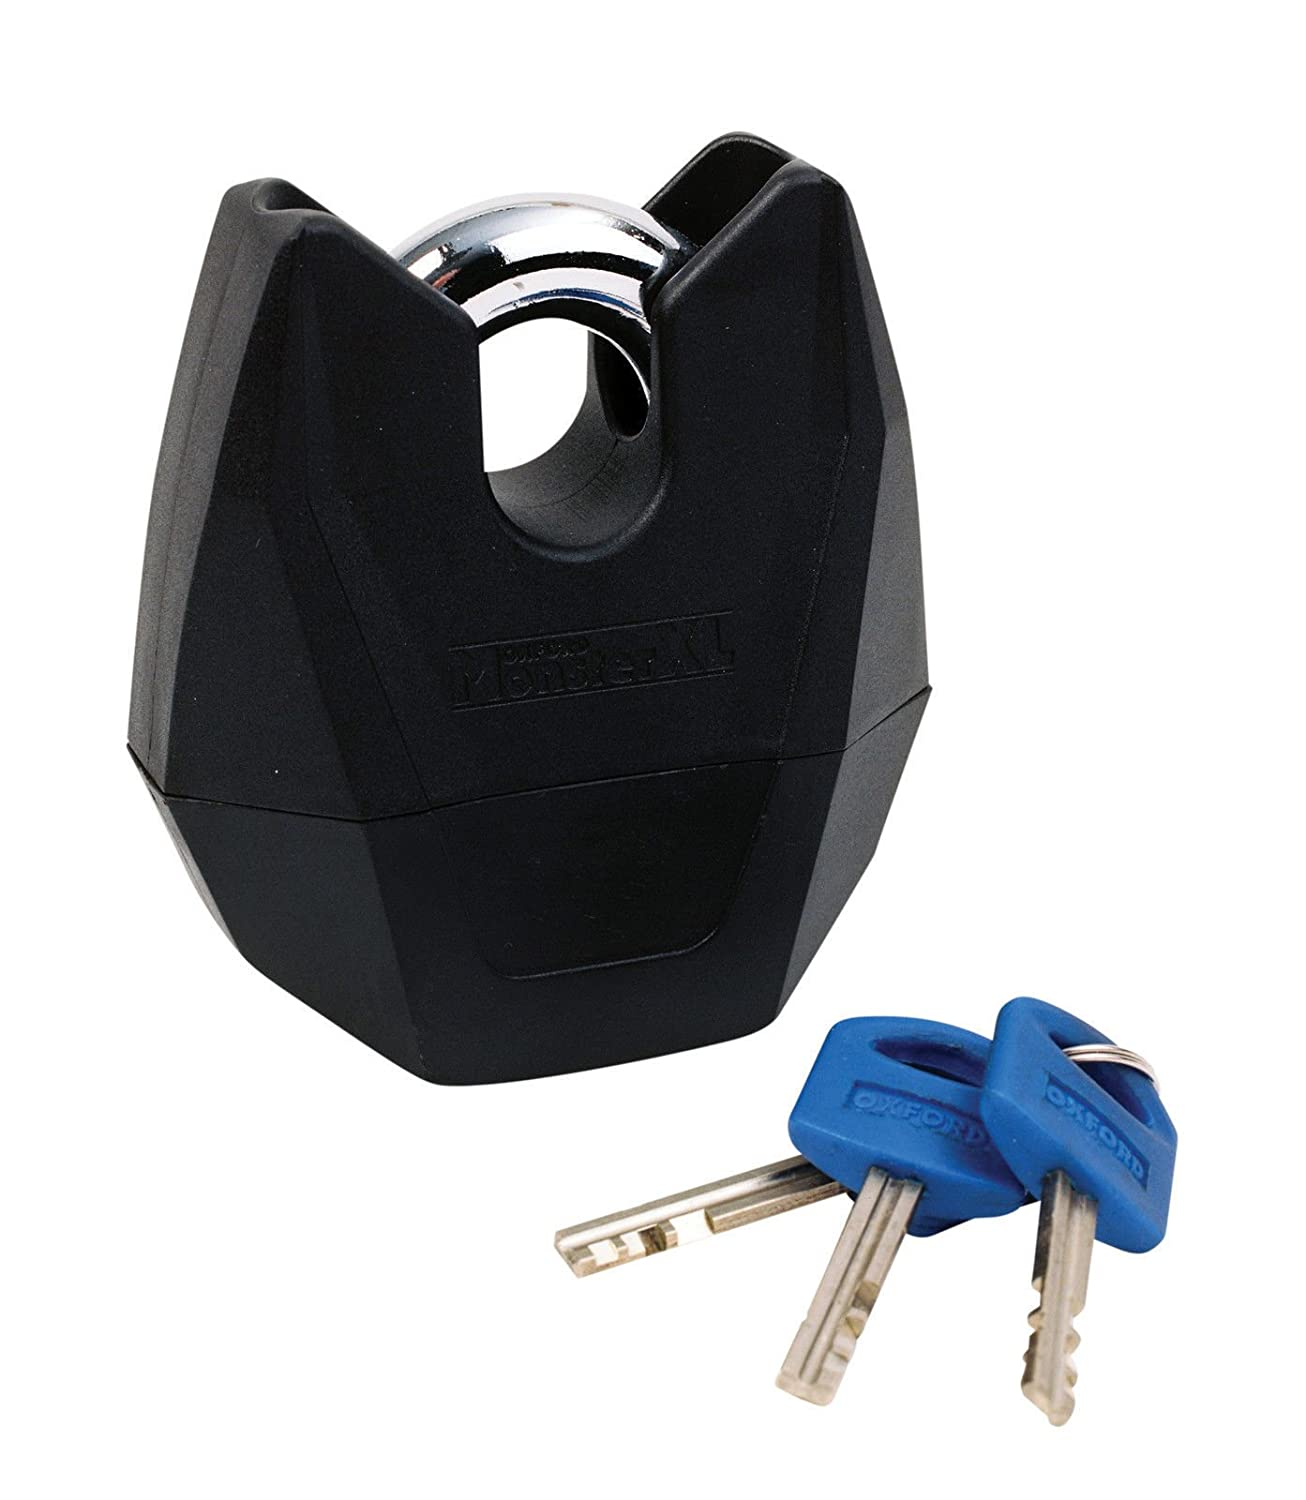 OXFORD HARDCORE XL MOTORBIKE CHAIN SHACKLE PAD LOCK 150 CM THATCHAM AND SOLD SECURE APPROVED WITH BALACLAVA FREE GIFT